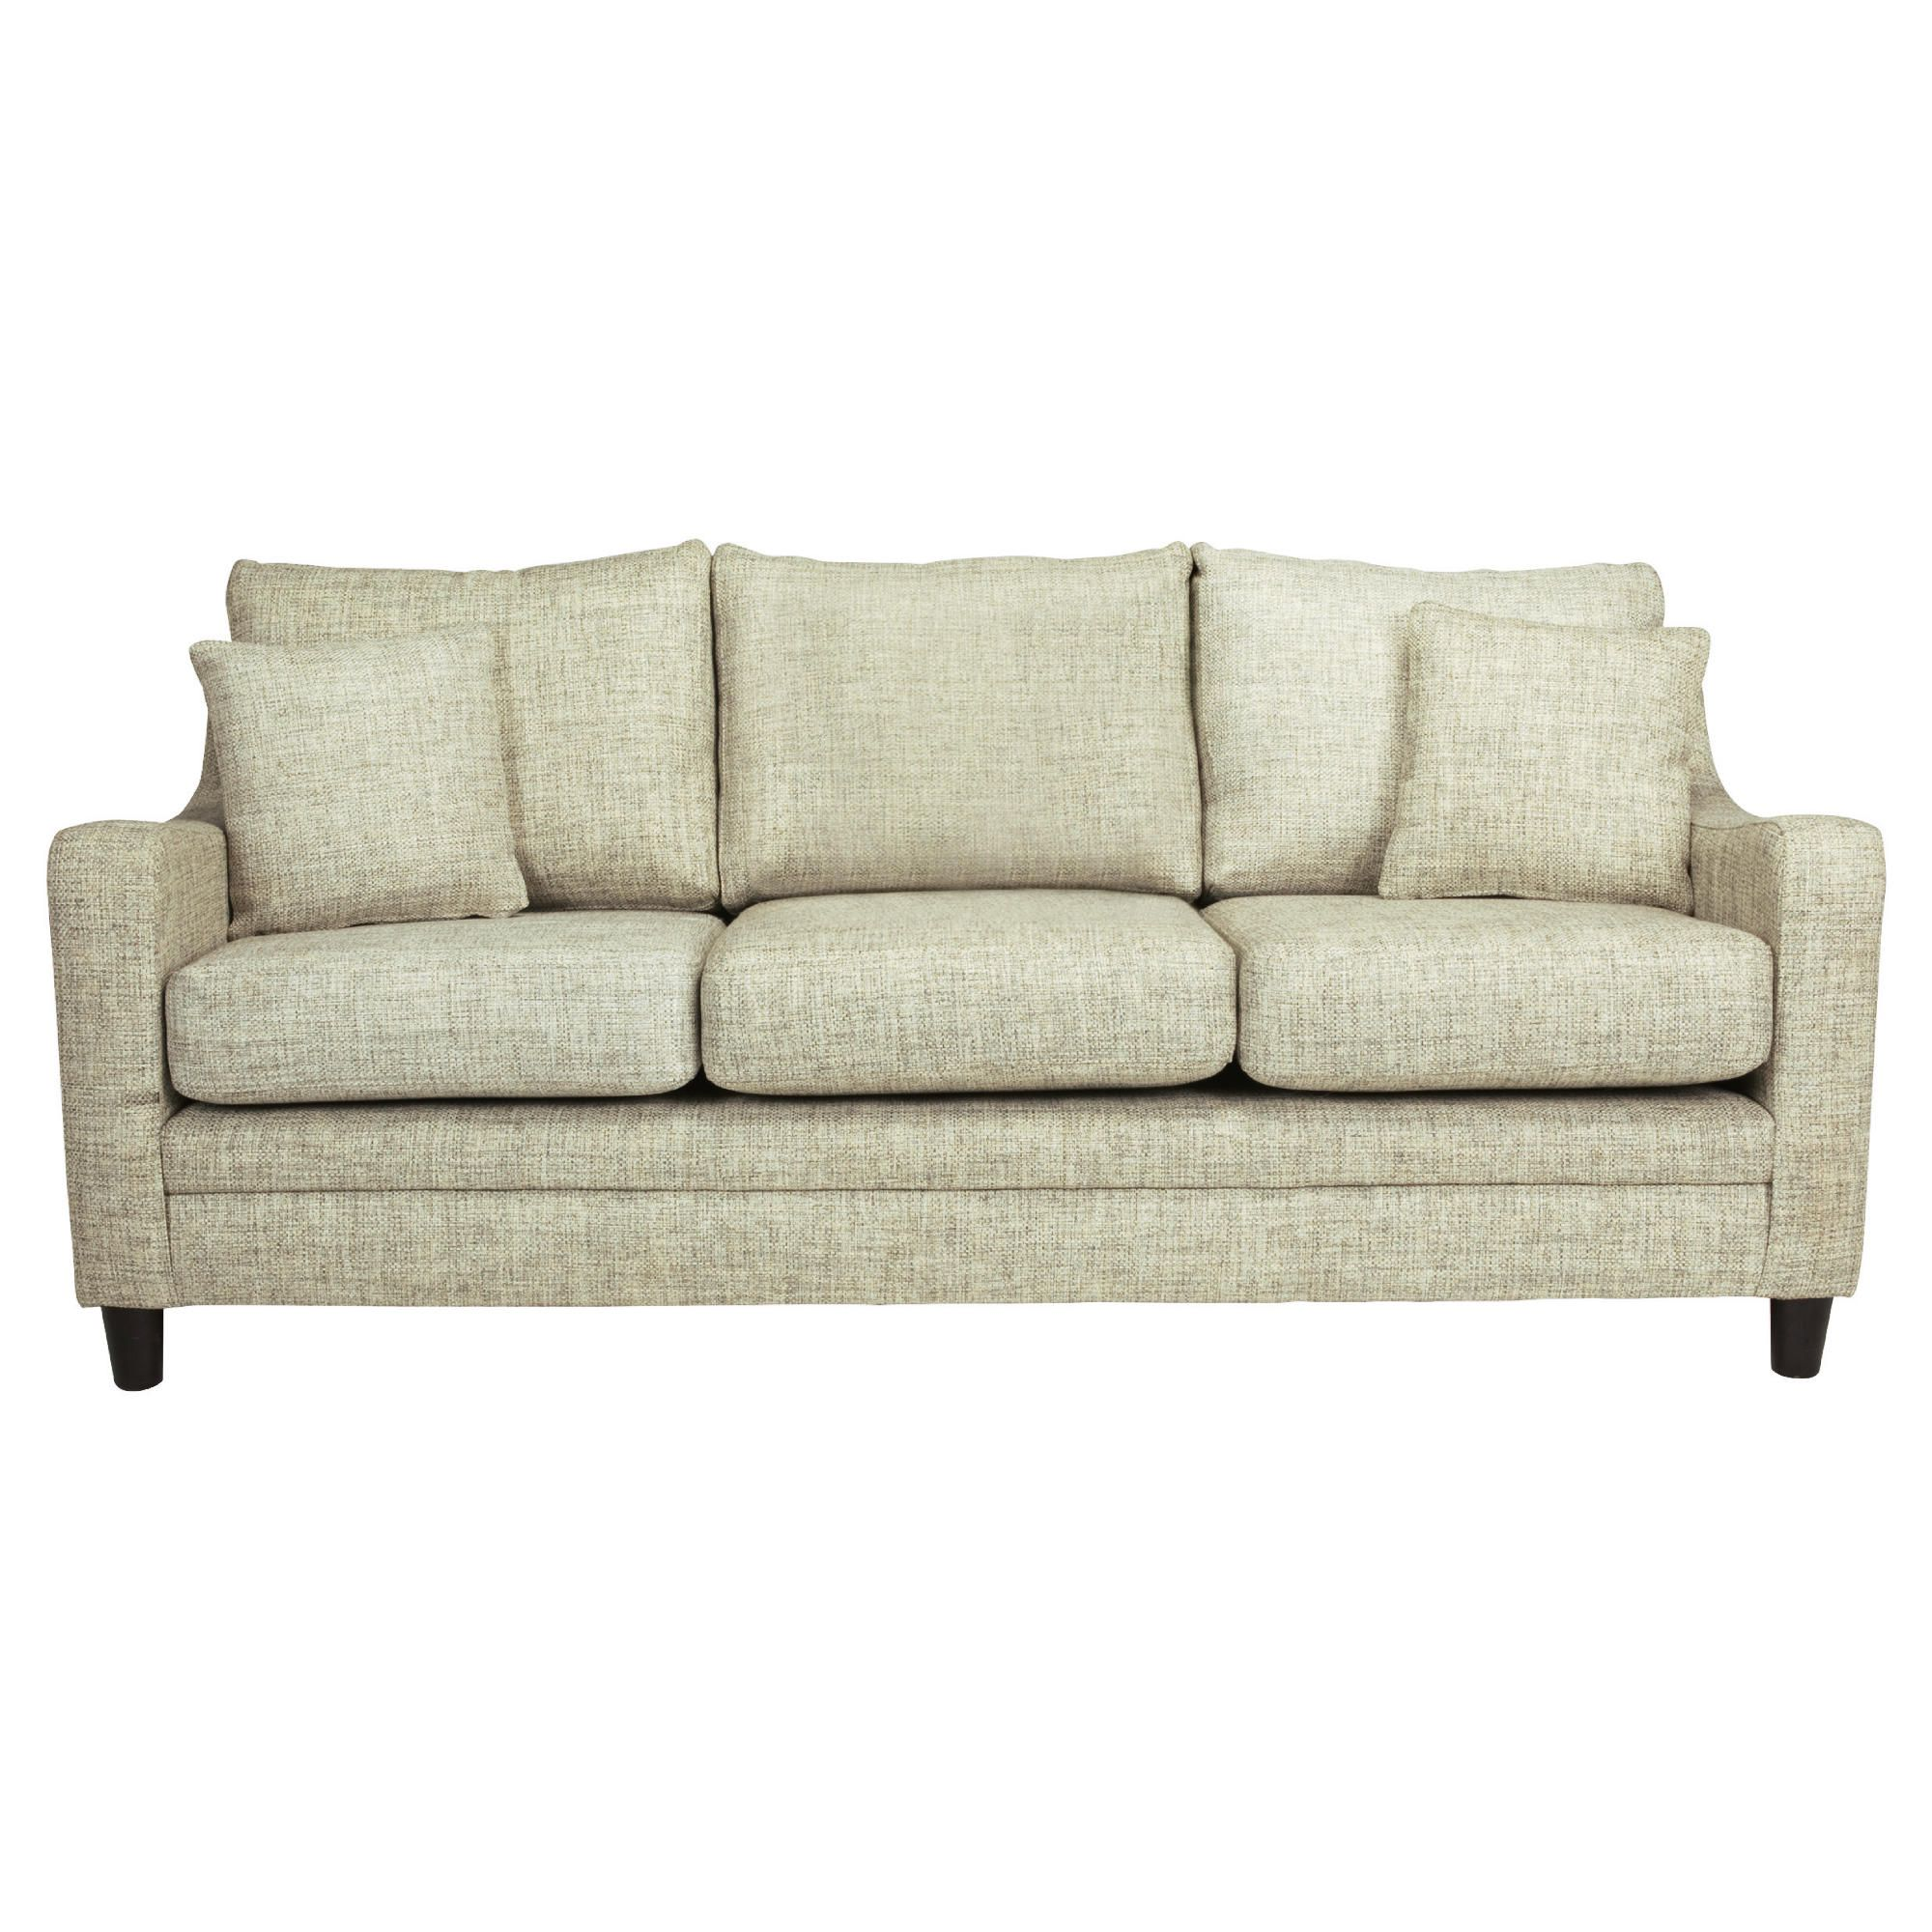 Buckingham Fabric Large Sofa in Biscuit at Tescos Direct